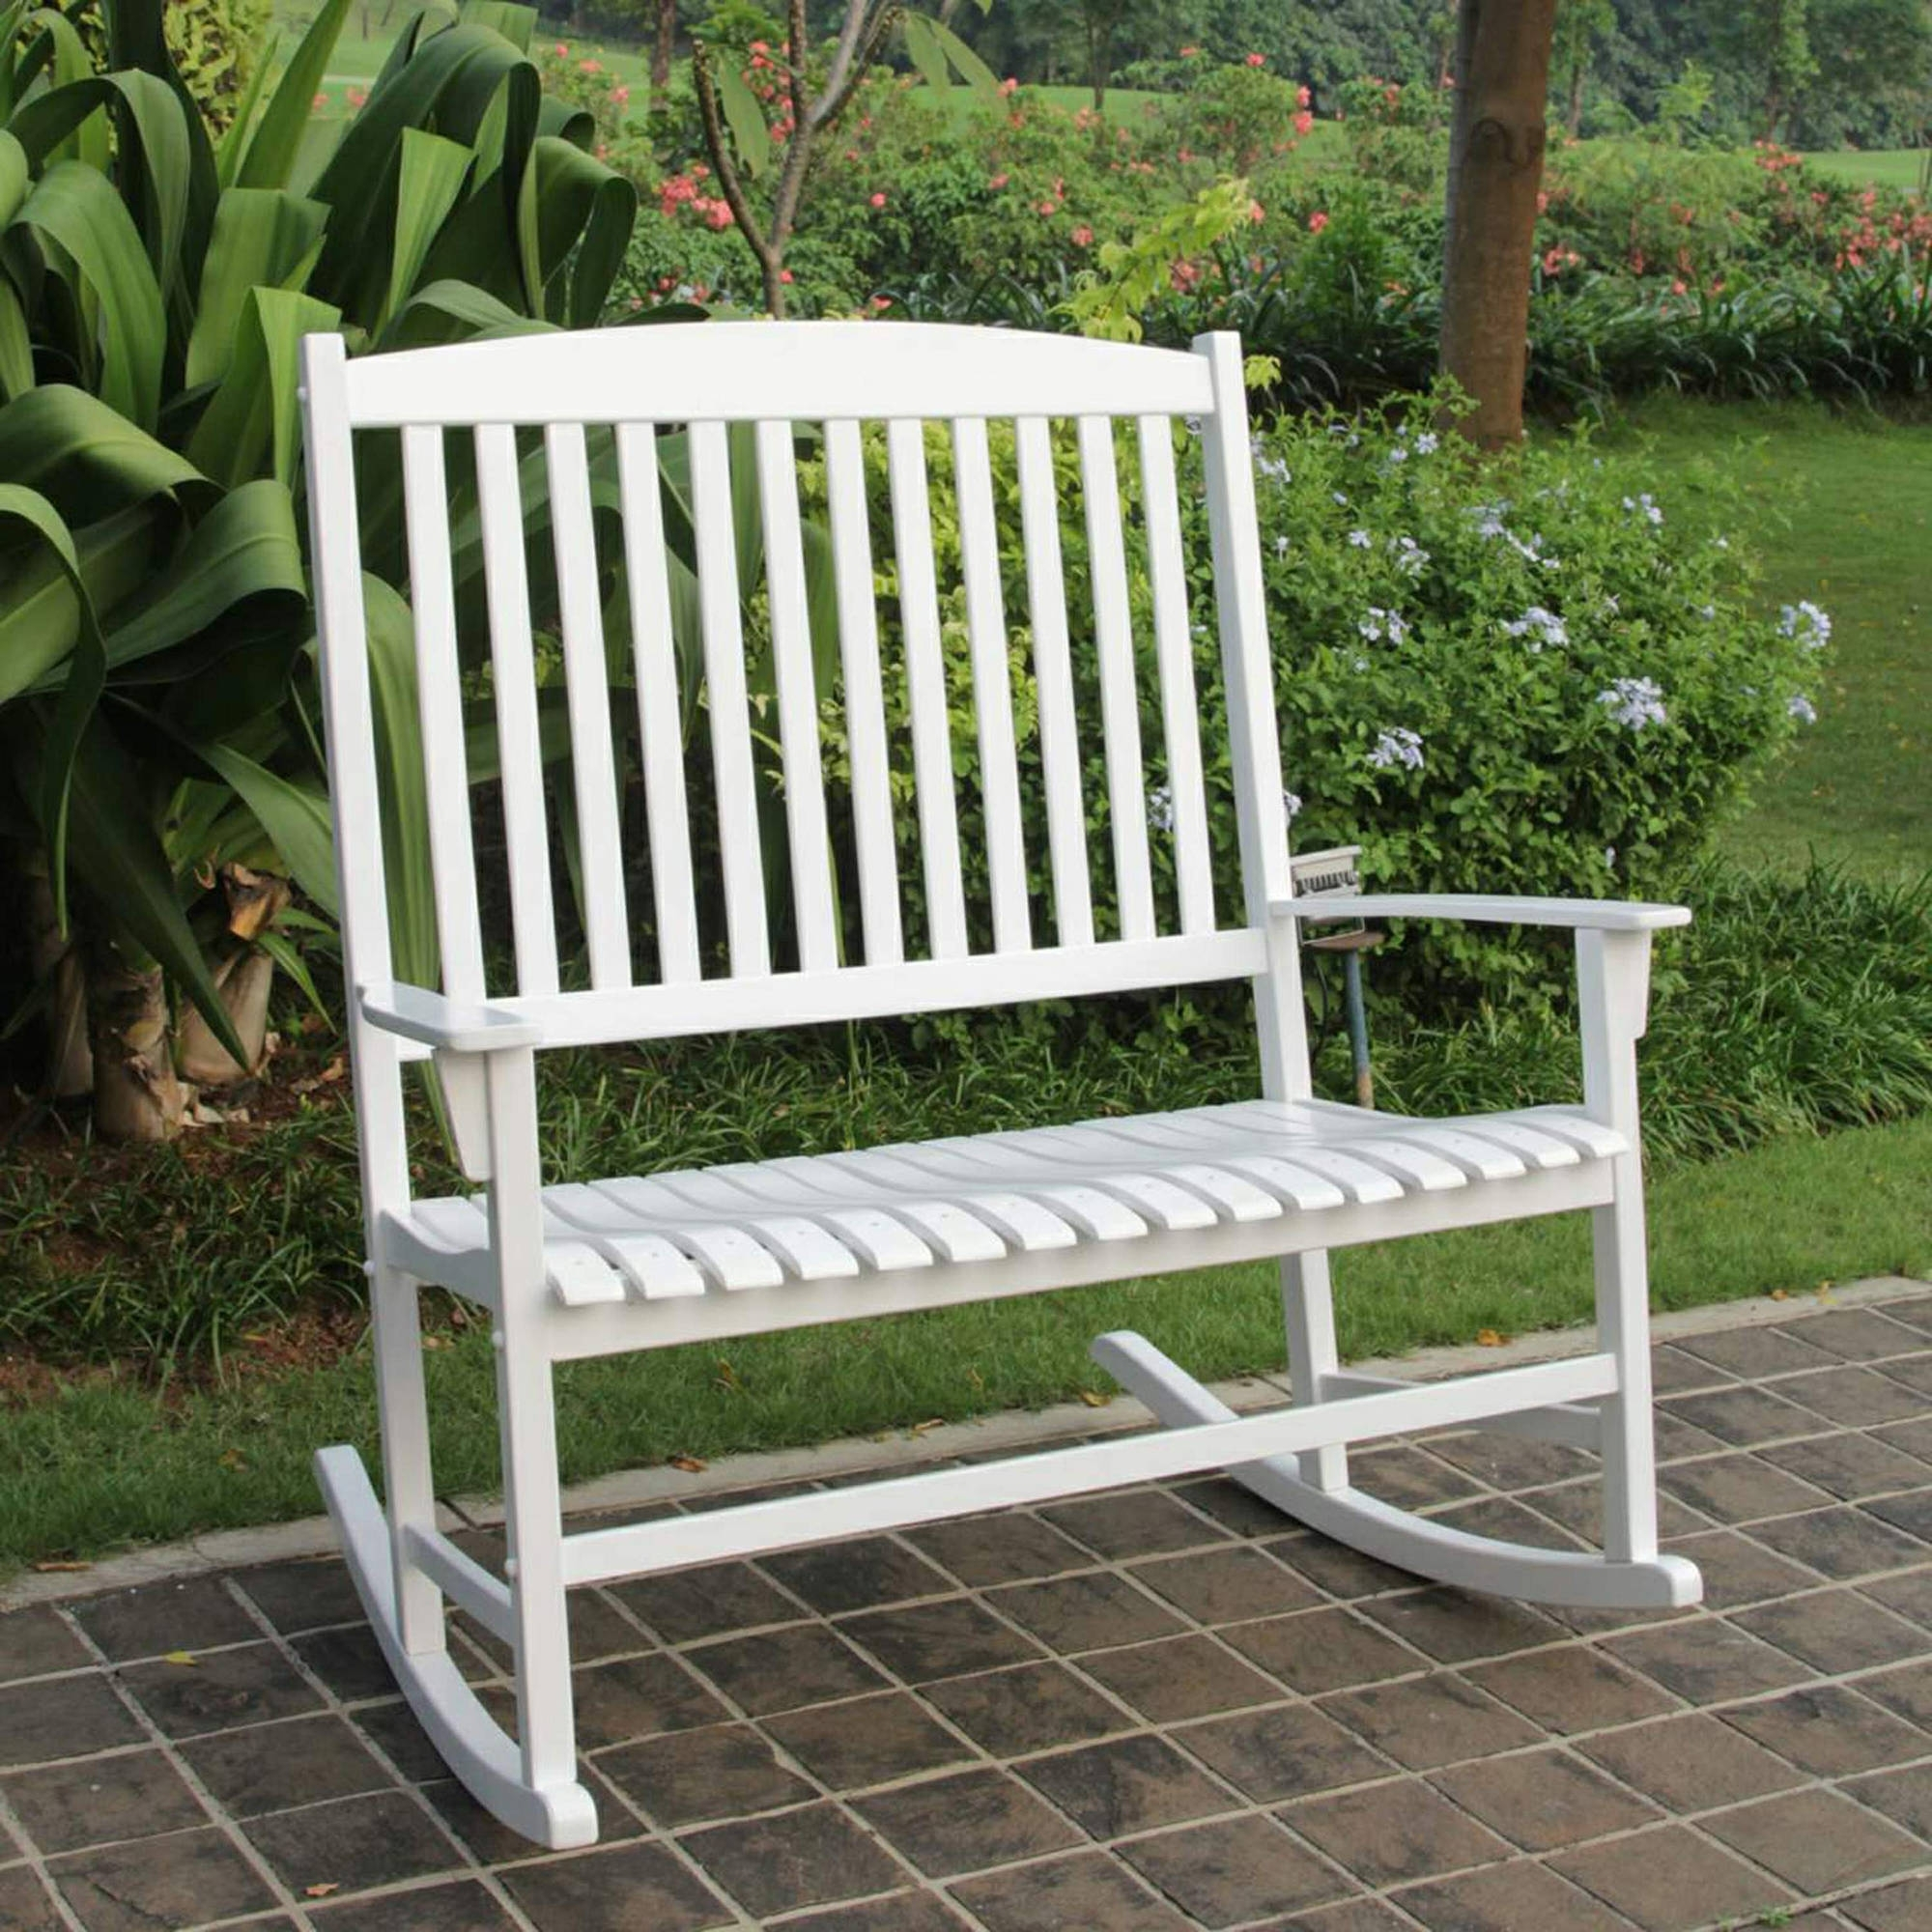 Outdoor Rocking Chairs Inside Fashionable Patio Loveseat White Hardwood Outdoor Rocking Chair For  (View 8 of 15)